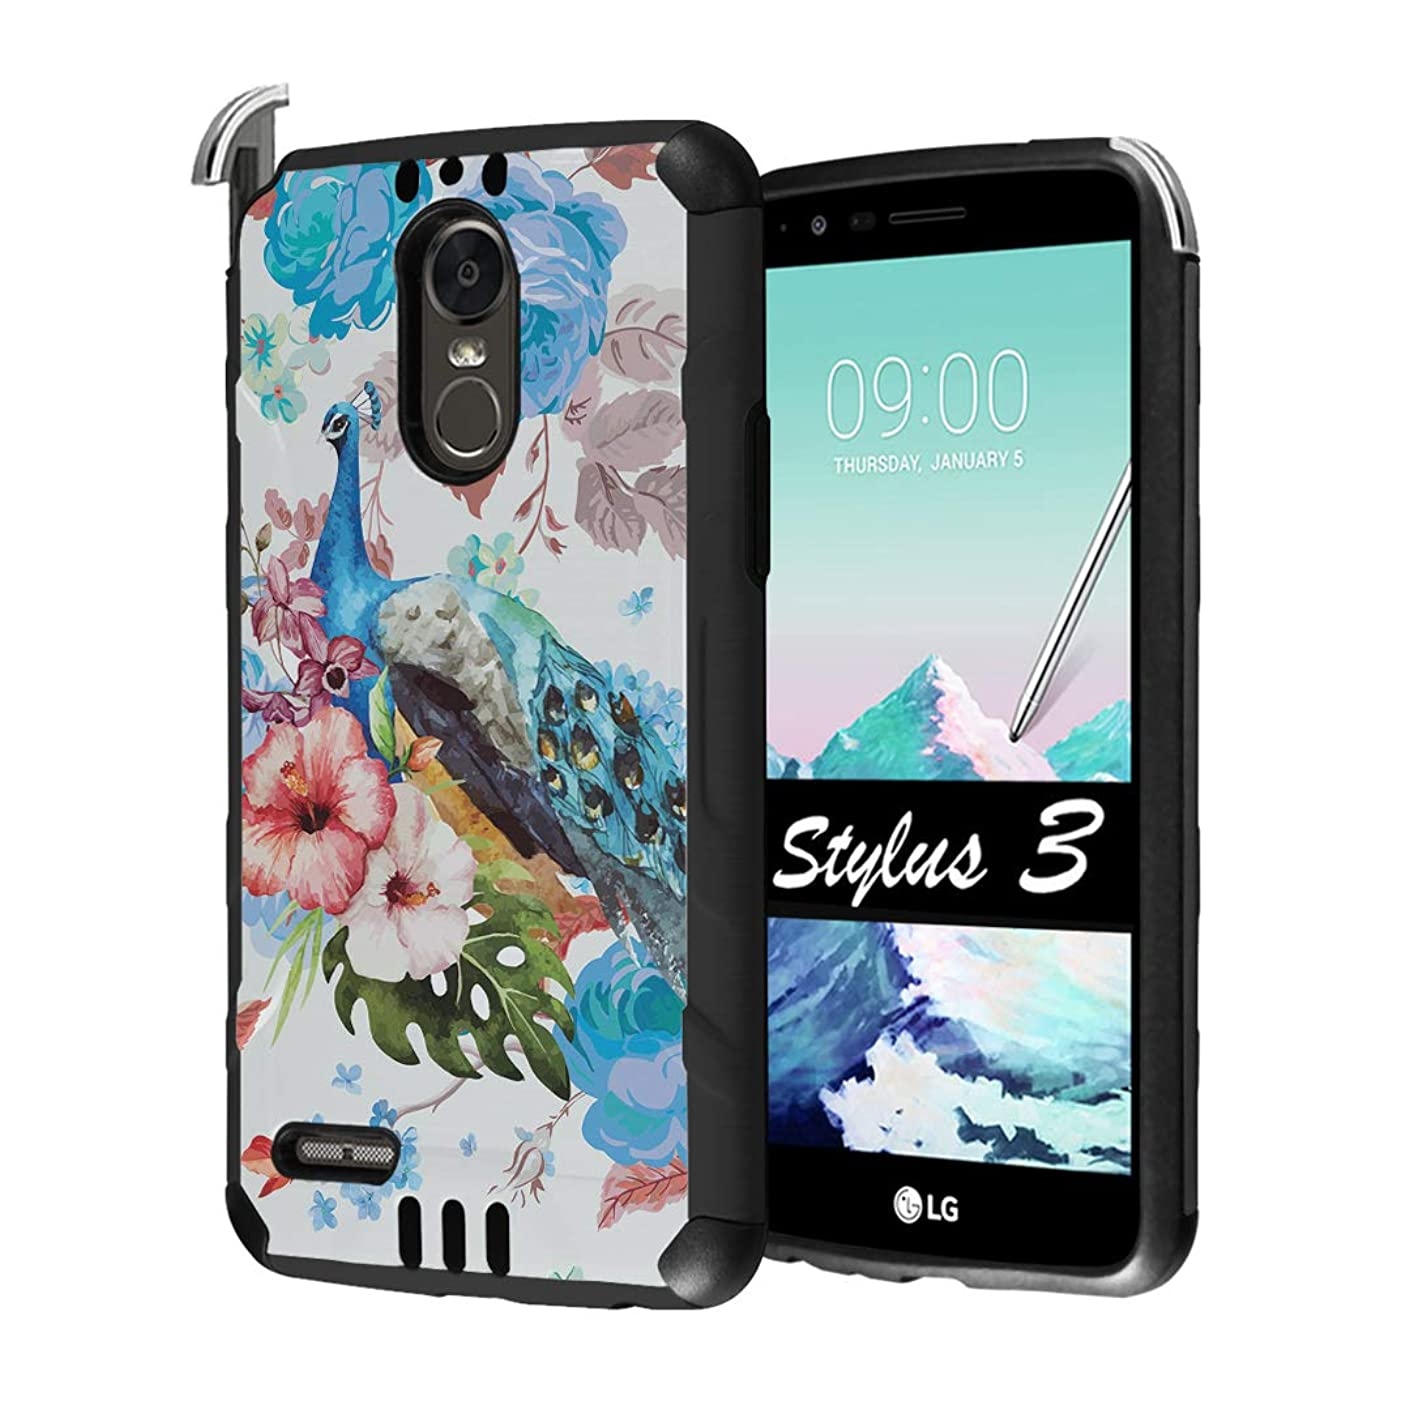 Capsule Case Compatible with LG Stylo 3, LG Stylo 3 Plus [Hybrid Dual Layer Supports Qi Wireless Charging Slim Defender Armor Combat Case Black] for LG Stylus 3 - (Flower Peacock)